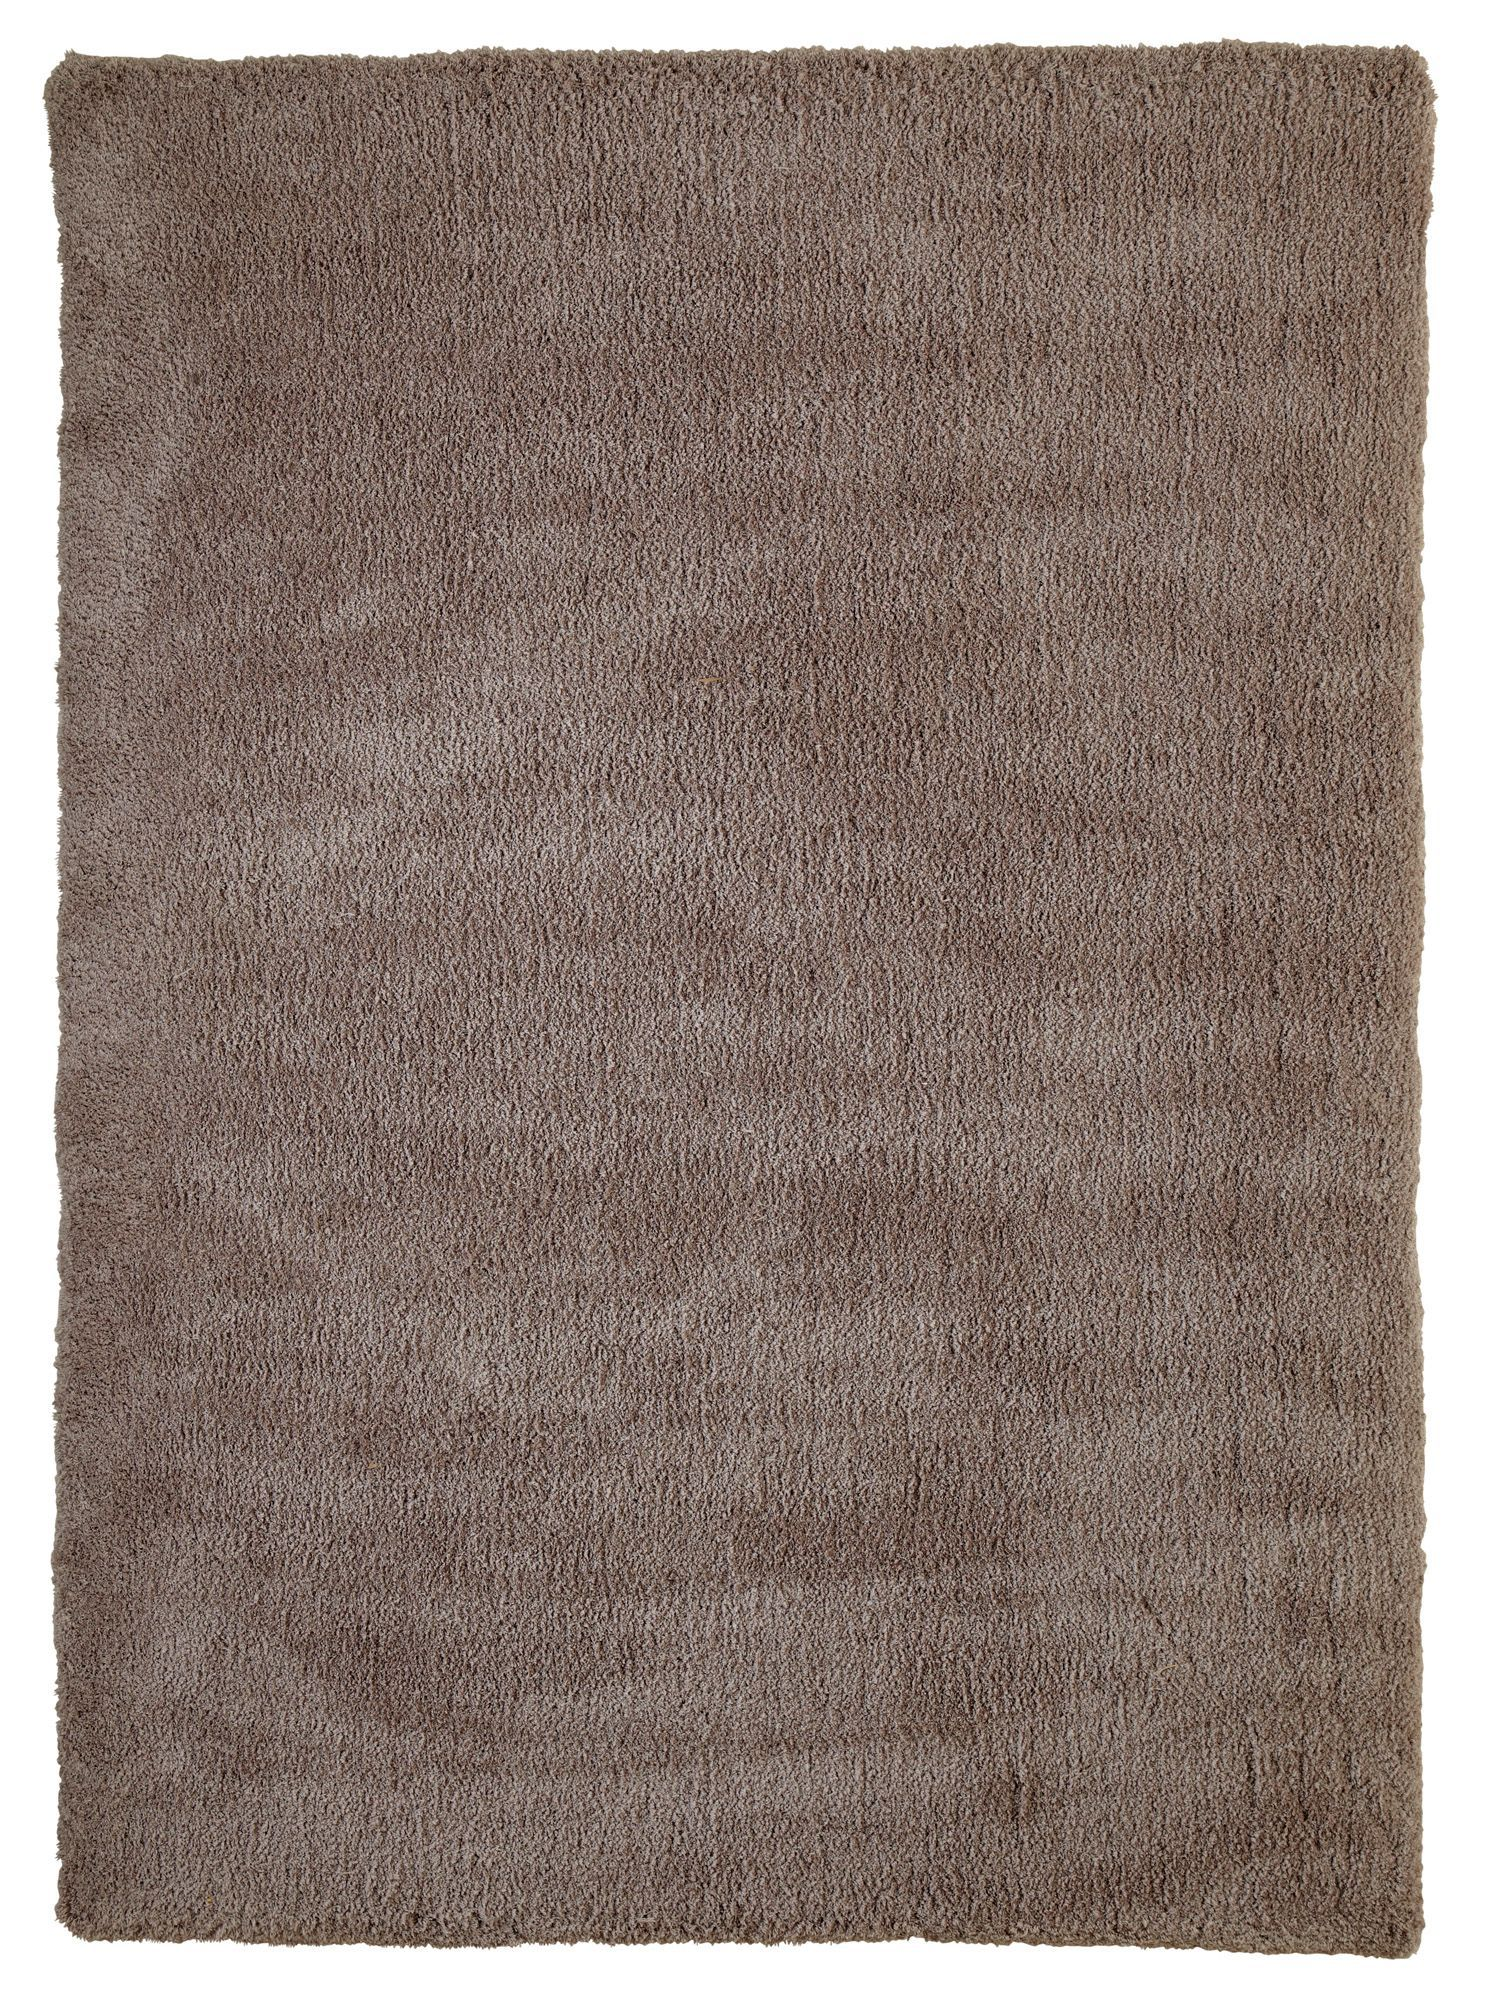 Colours Oriana Mink Rug L 1 7m W 1 2m Departments